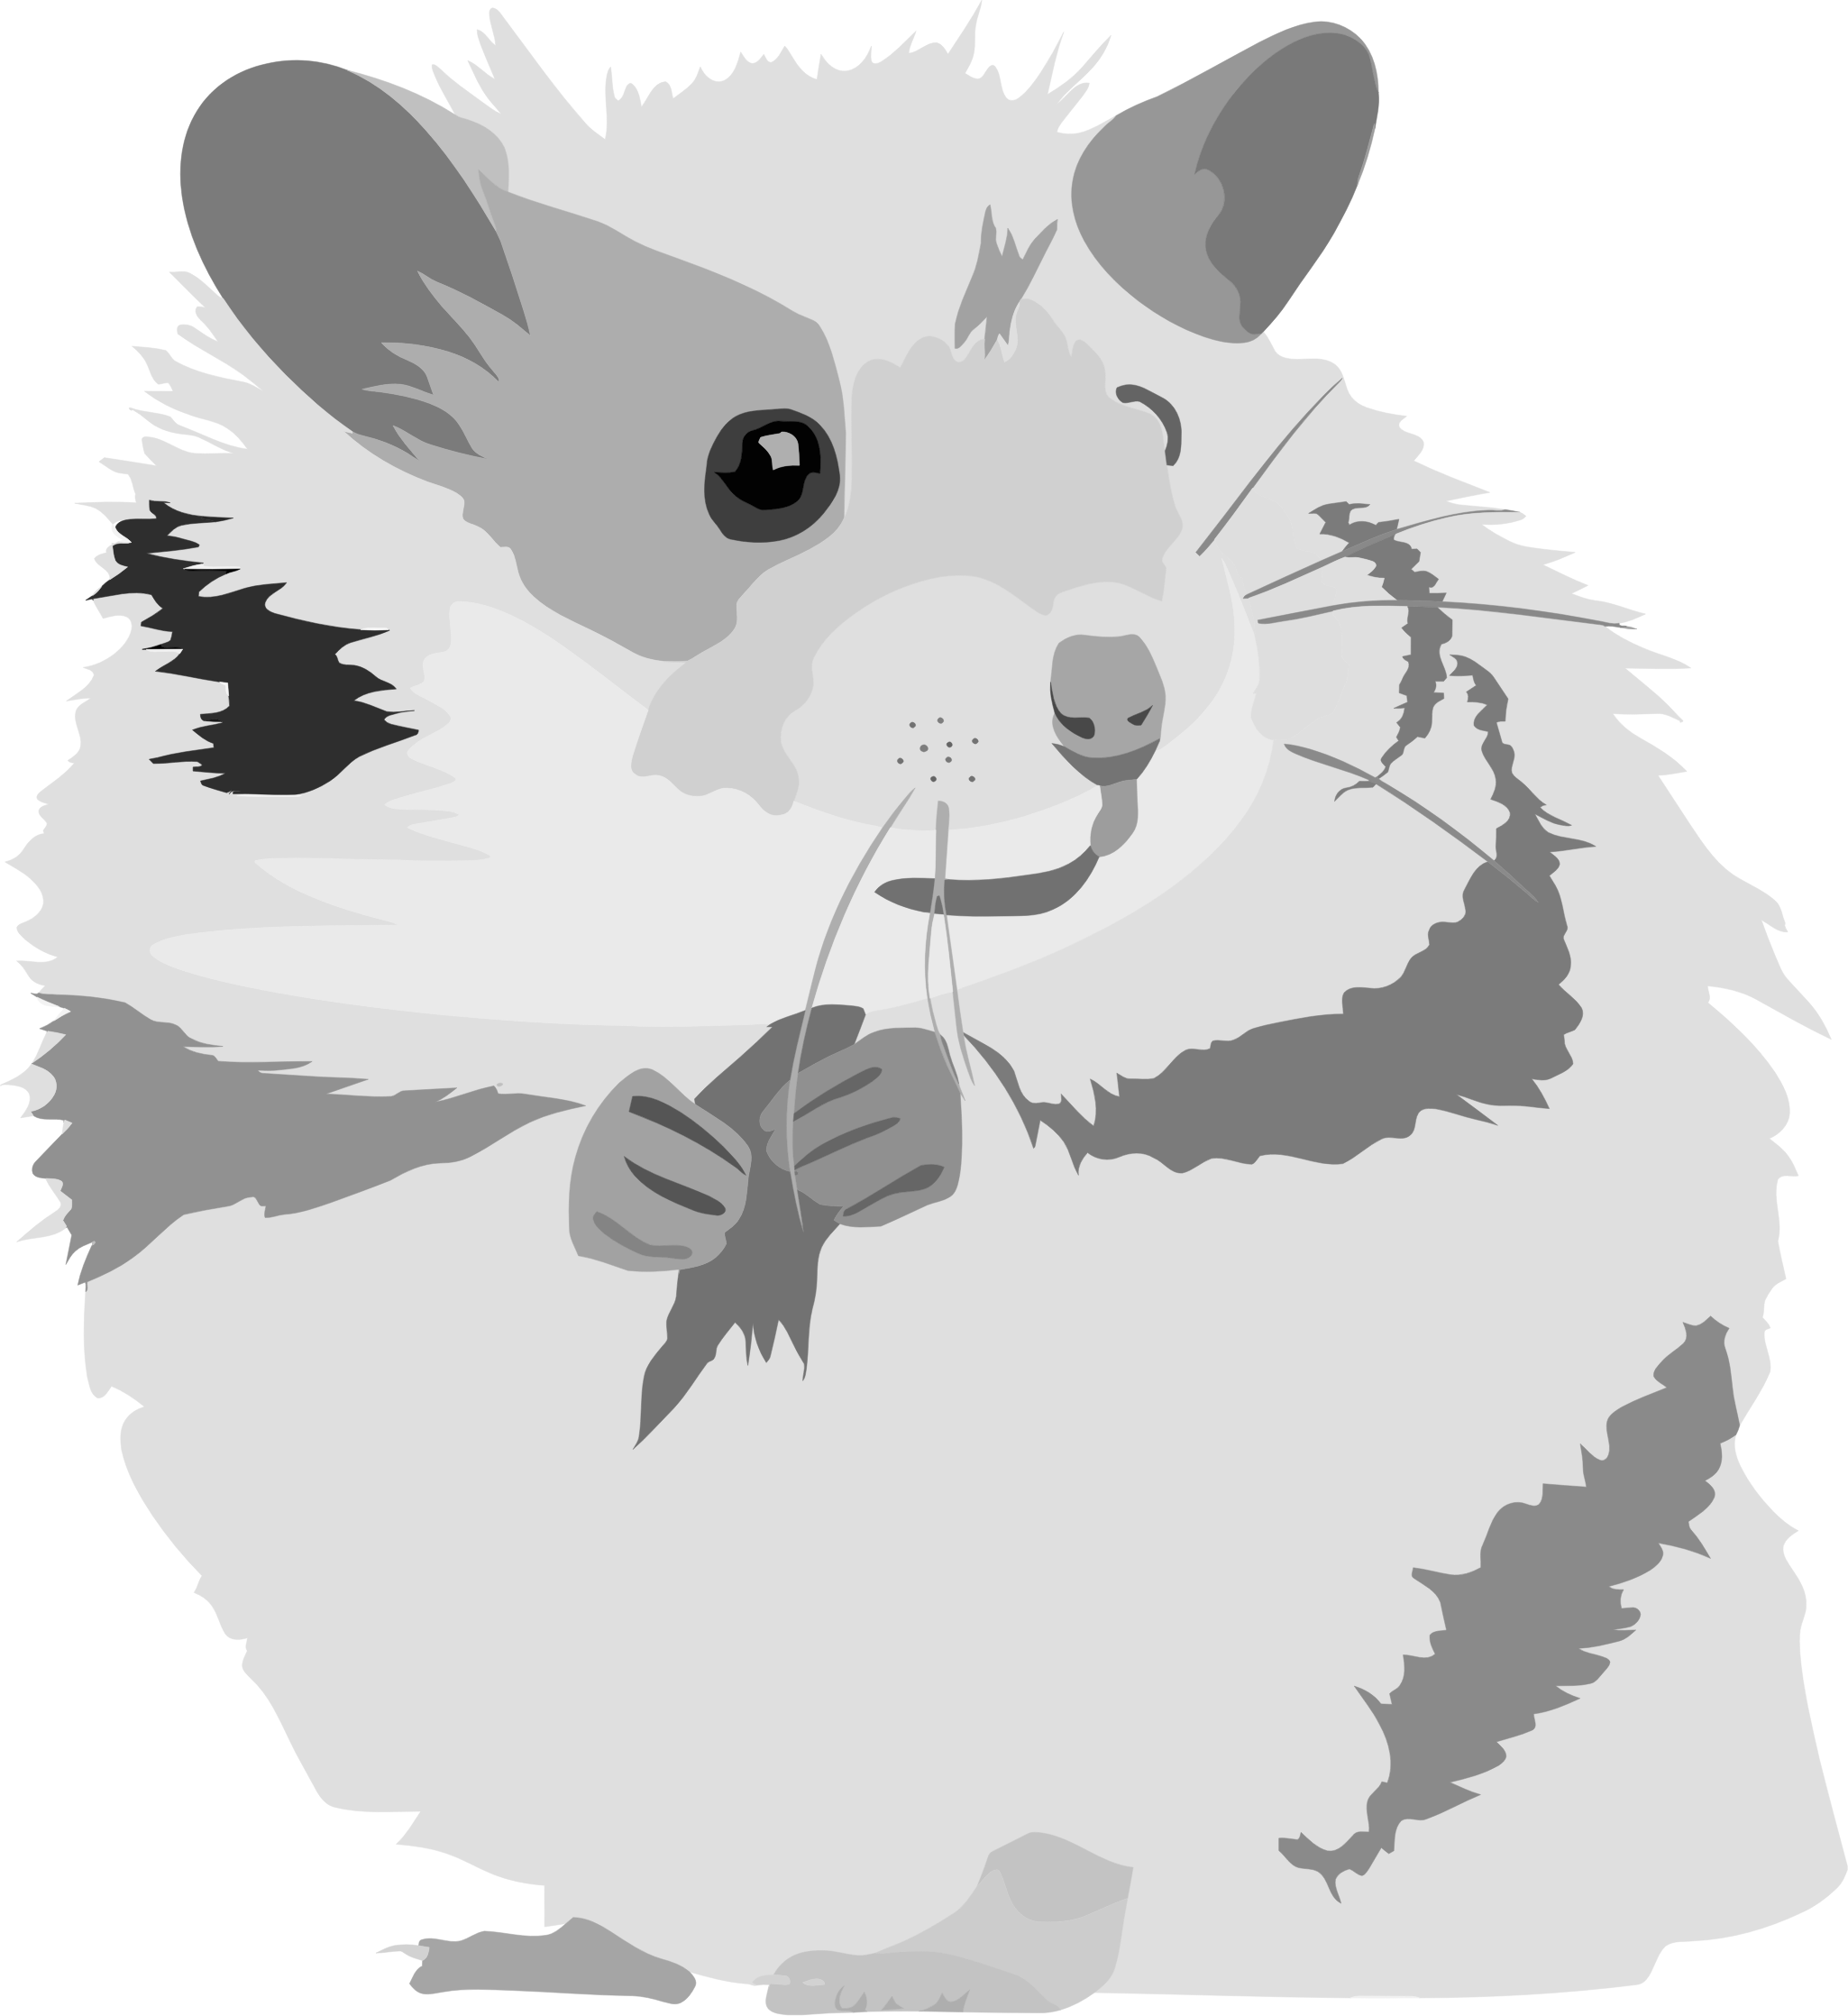 Clipartblack com hamsterbclipart animals. Hamster clipart face